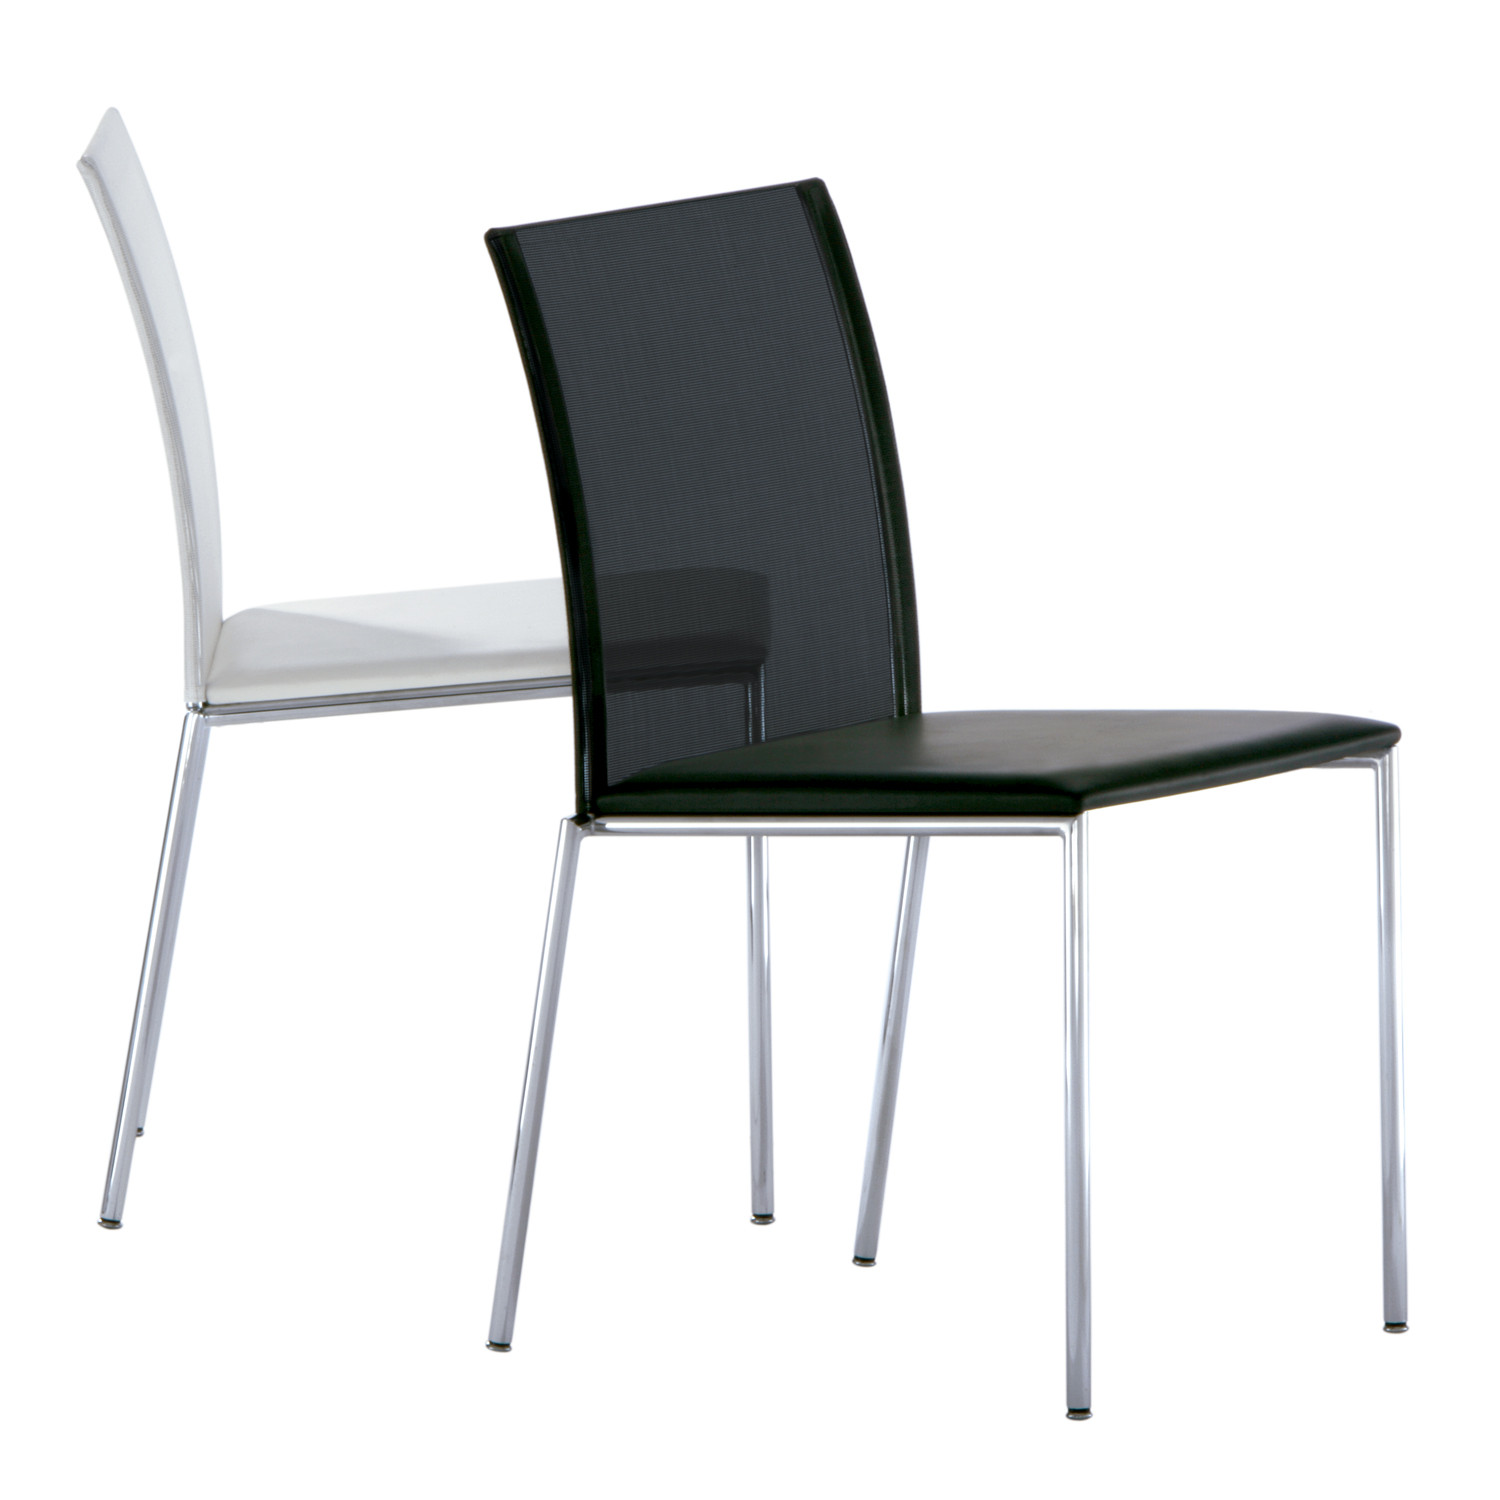 MilanoFlair Chairs manufactured bt Brunner